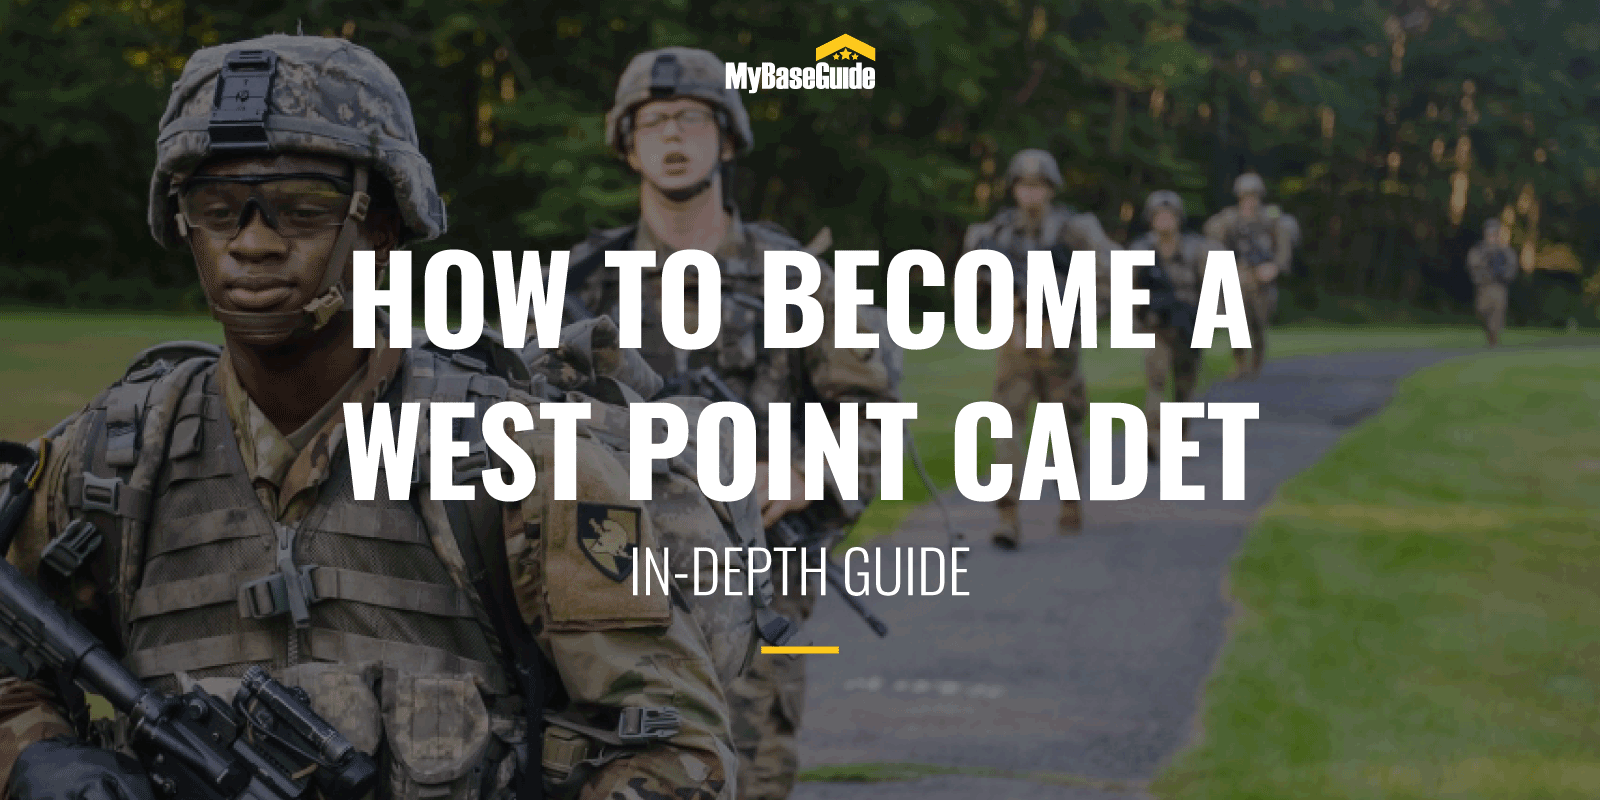 How to Become a West Point Cadet: In-Depth Guide